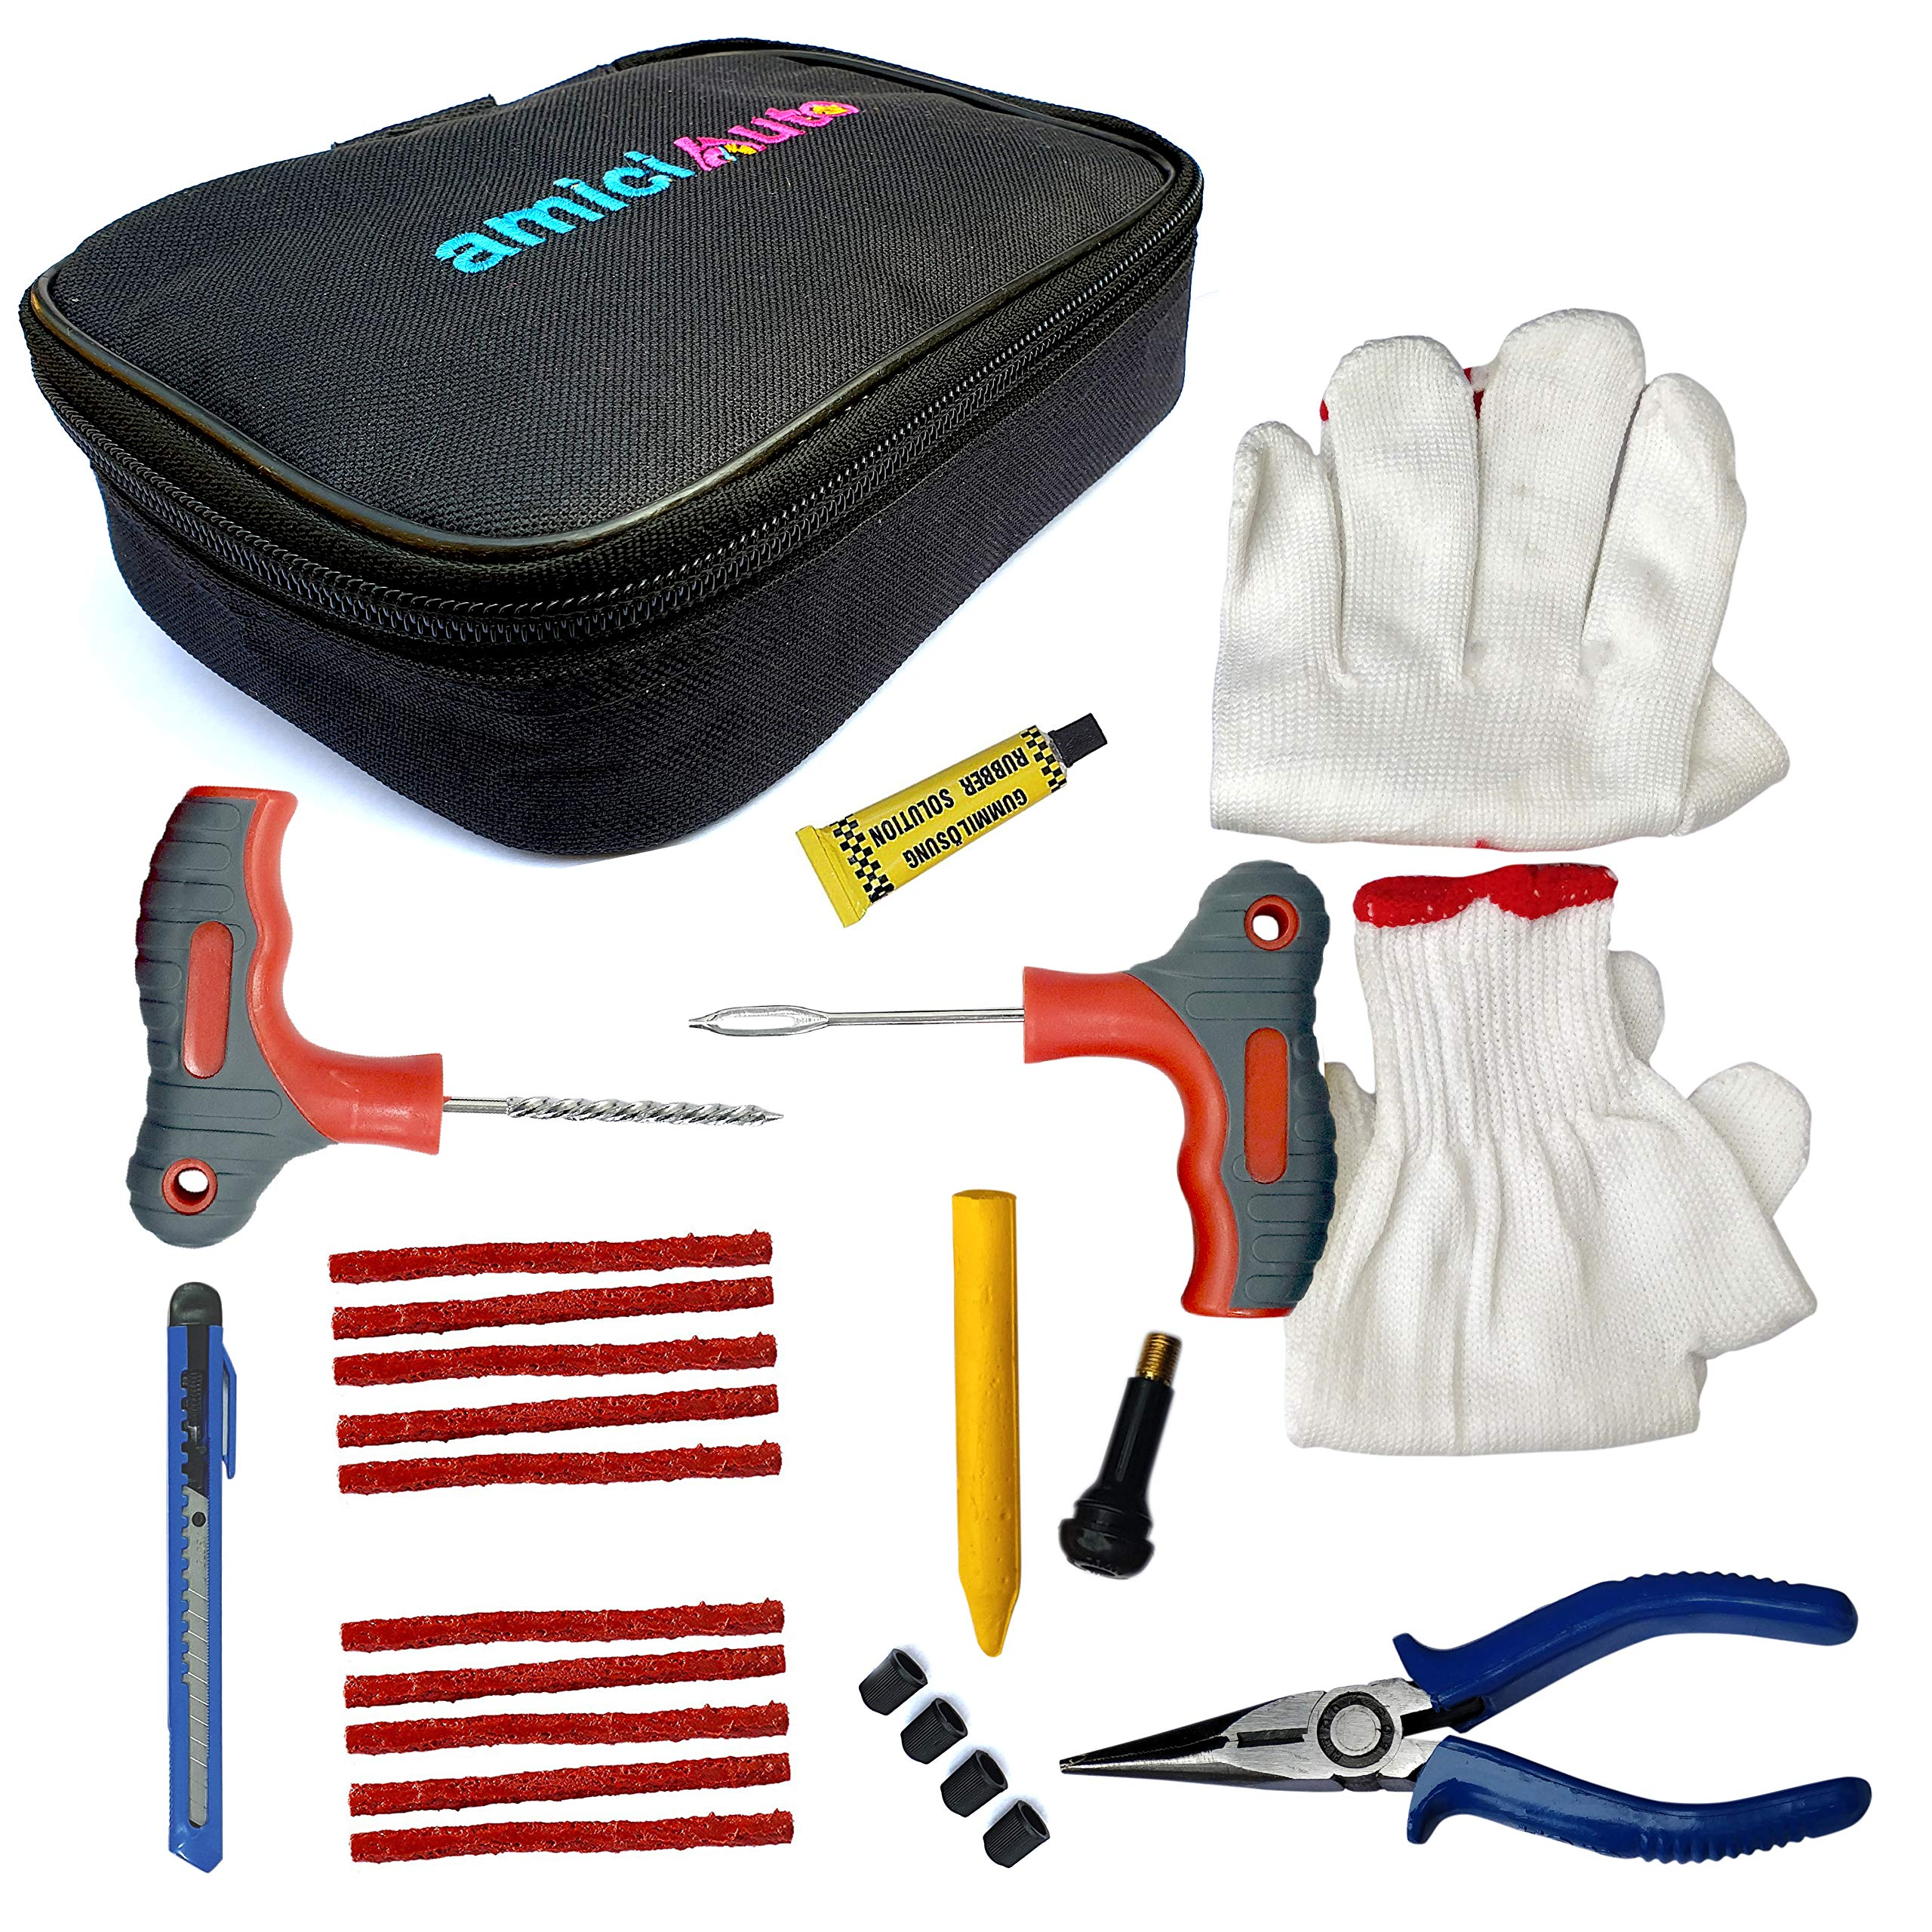 amiciAuto Tubeless Tyre Puncture Repair Complete Kit for Car and Bike (Complete Kit with Easy Storage Nylon Bag) product image